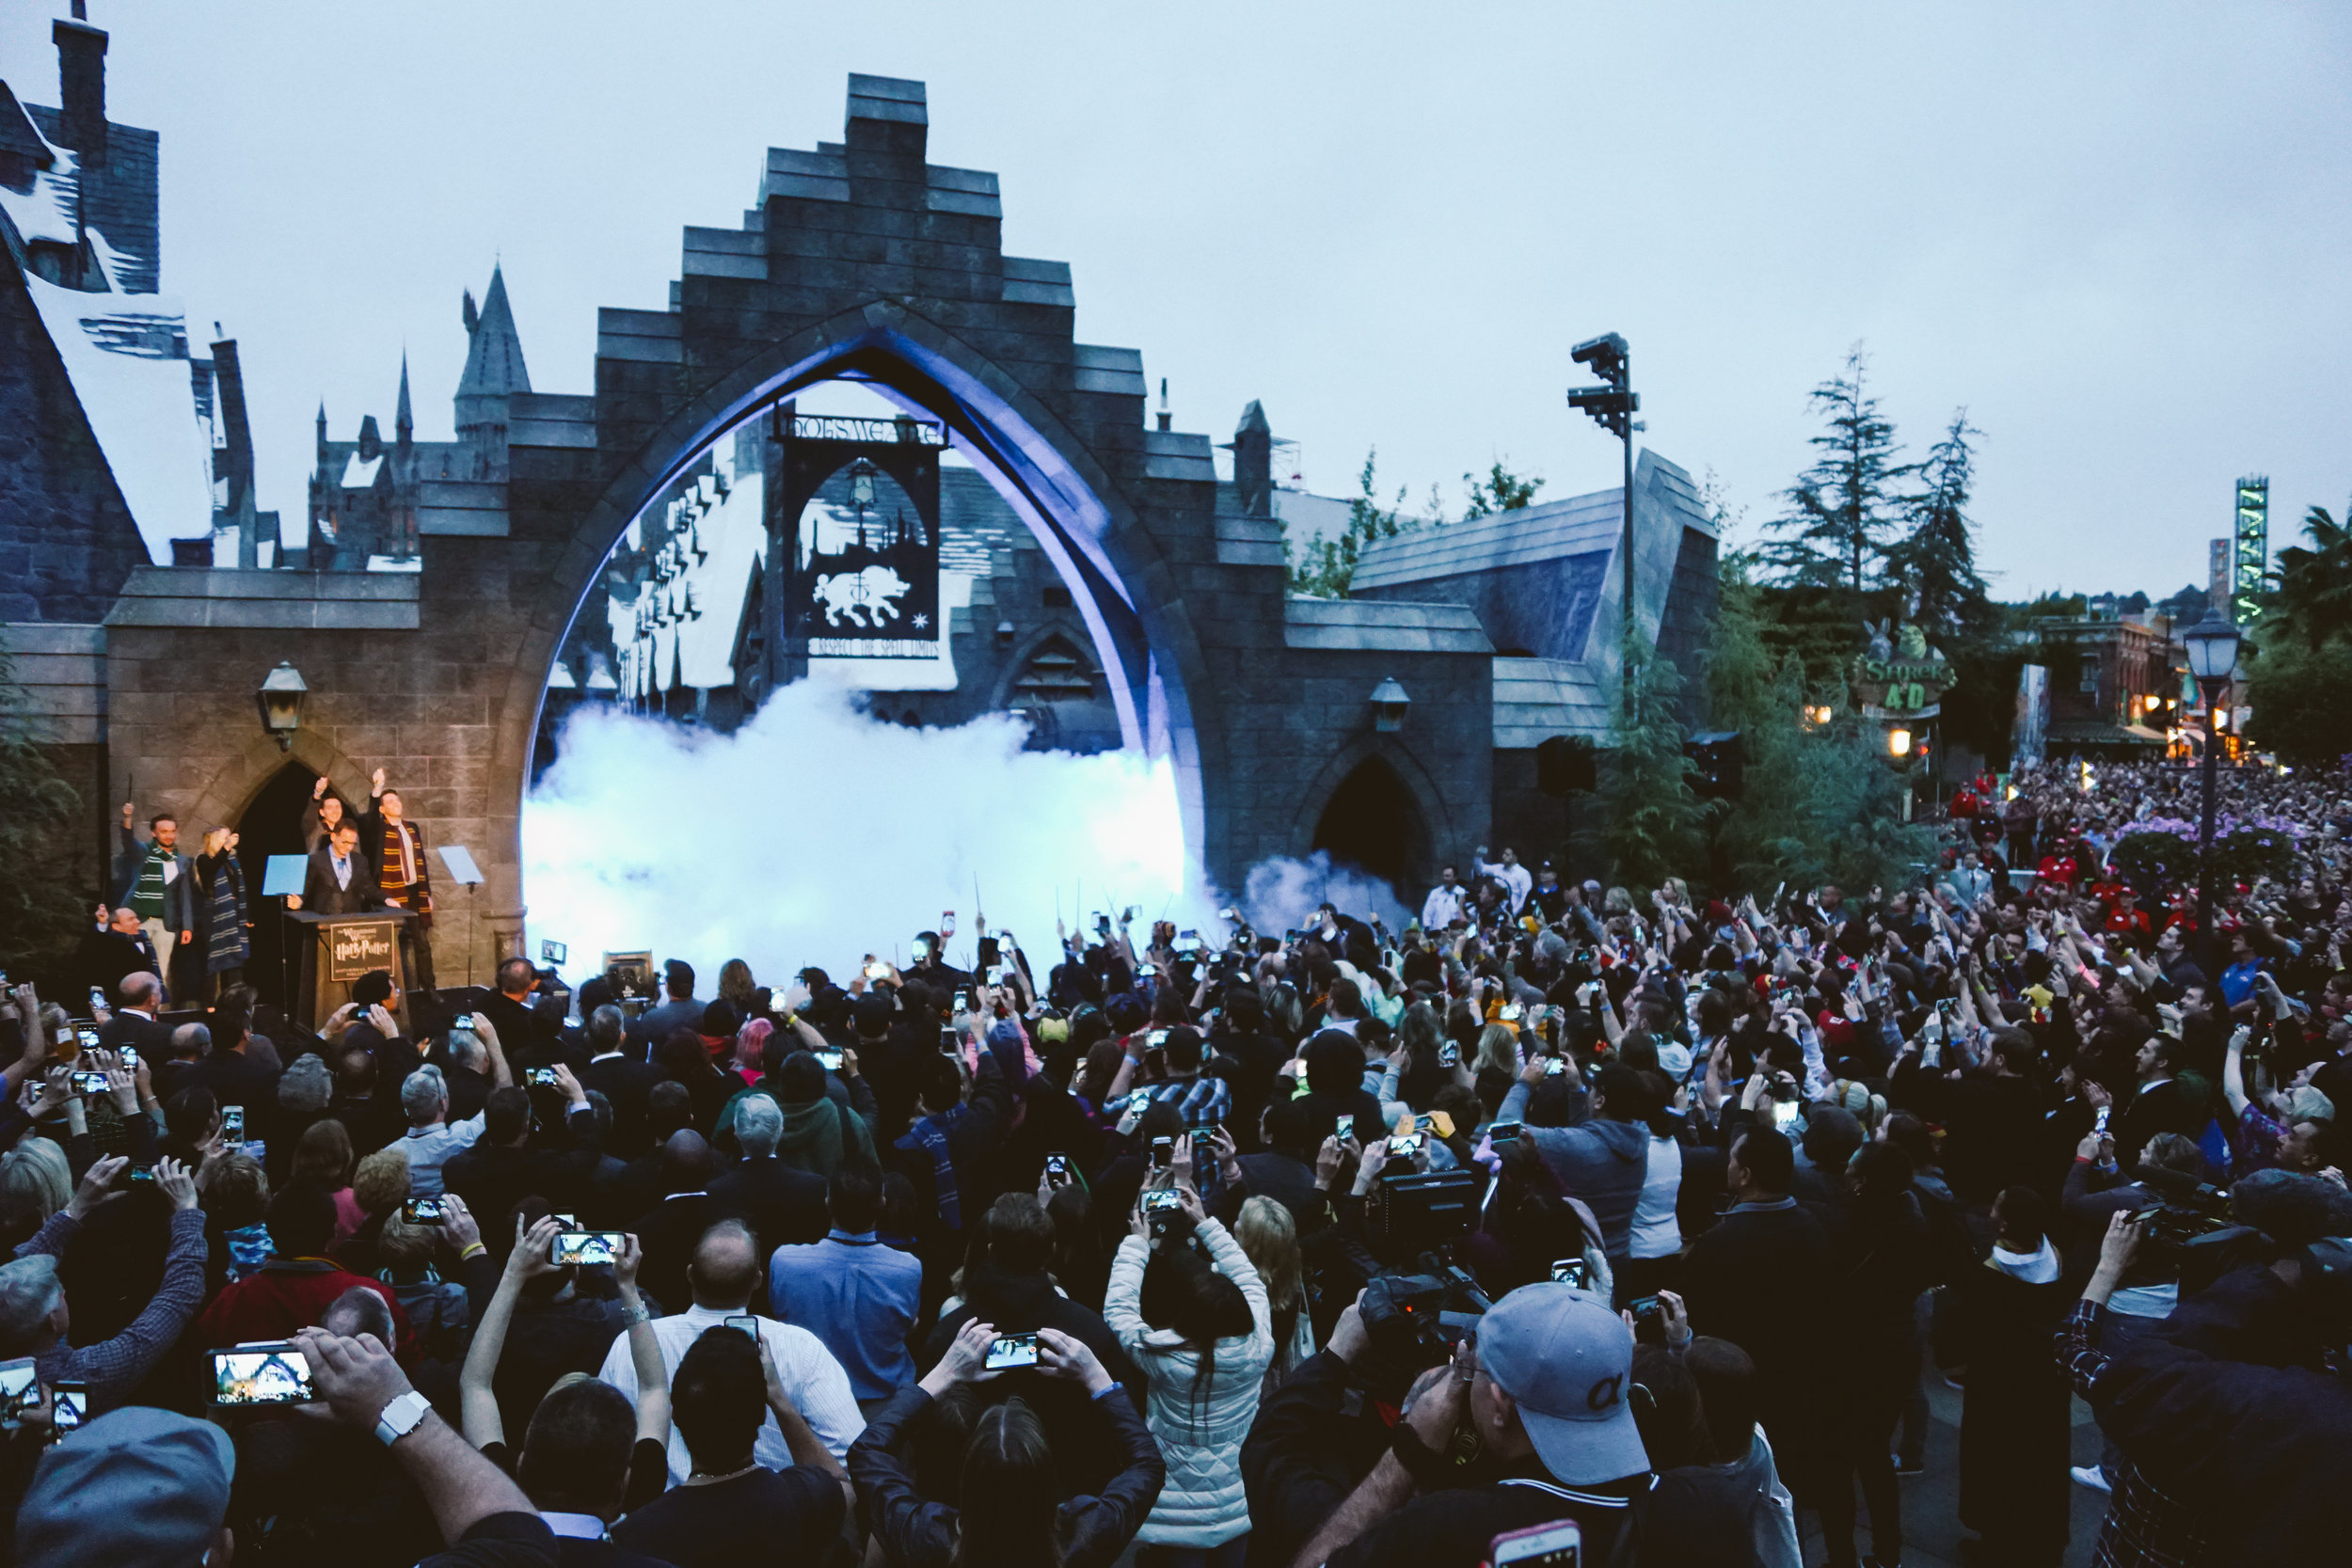 HarryPotterOpening-01186.jpg